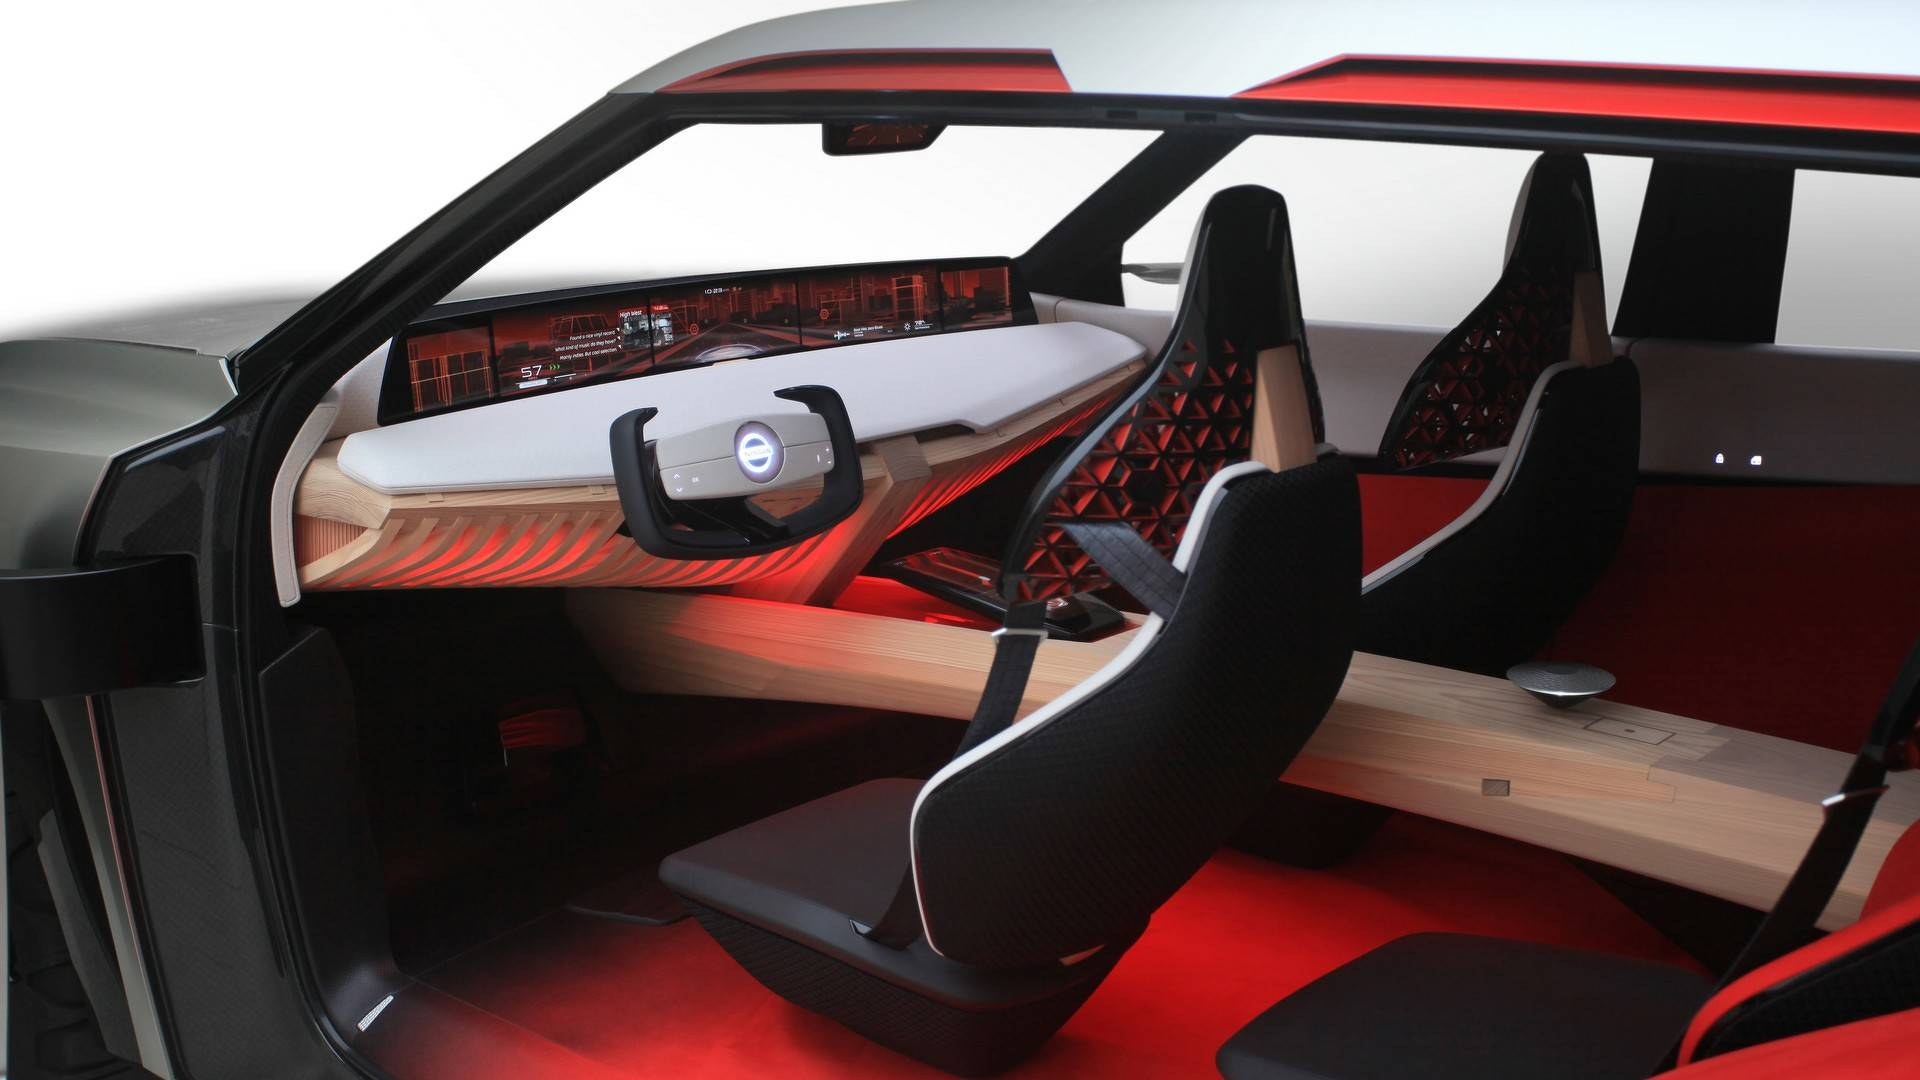 nissan-xmotion-concept.jpg